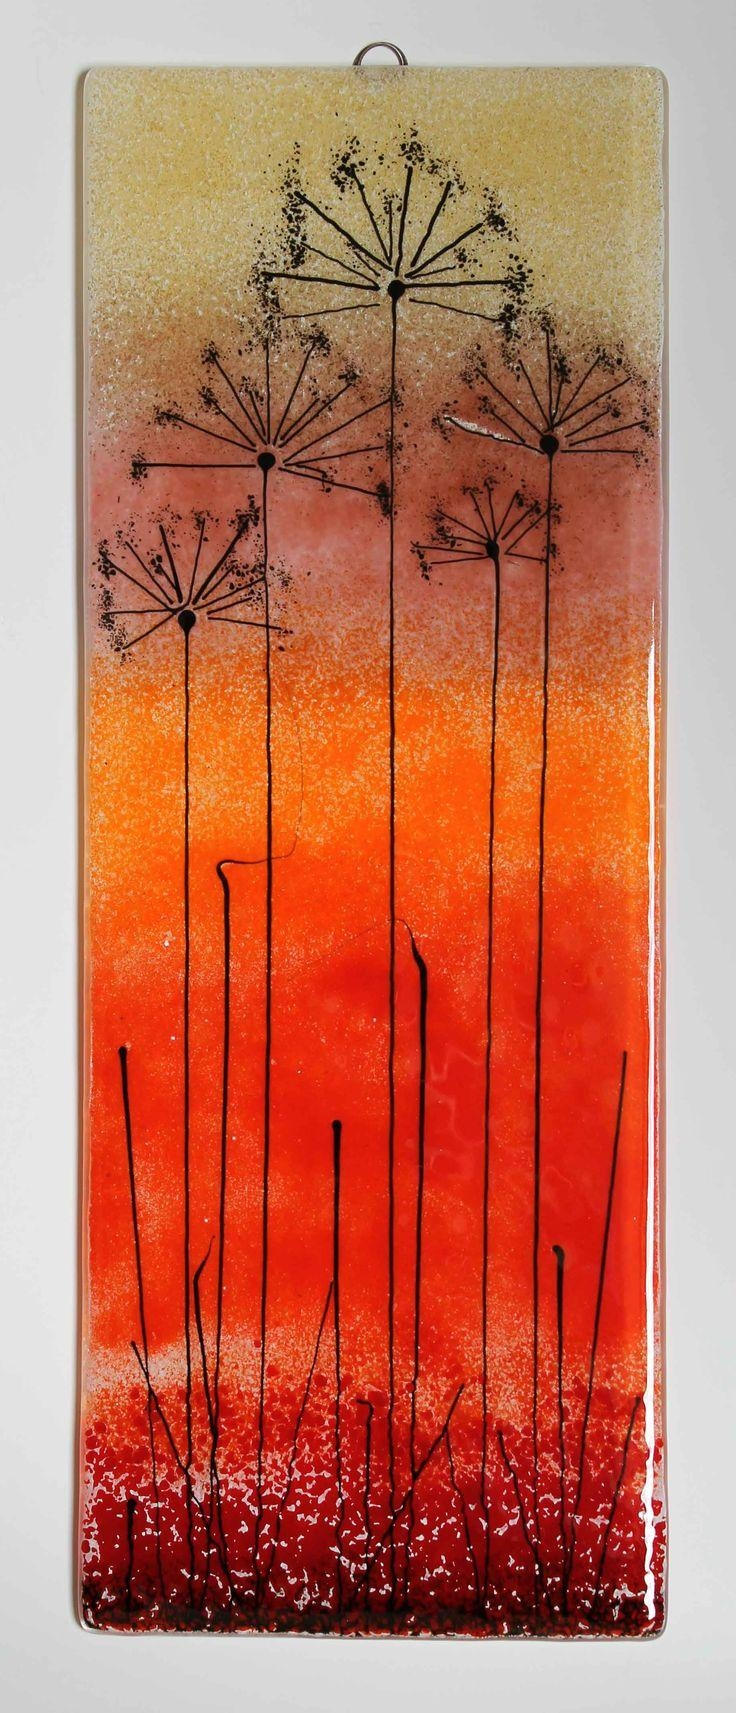 1909 Best Fused Glass - Artsy Fartsy Images On Pinterest | Stained regarding Glass Wall Artworks